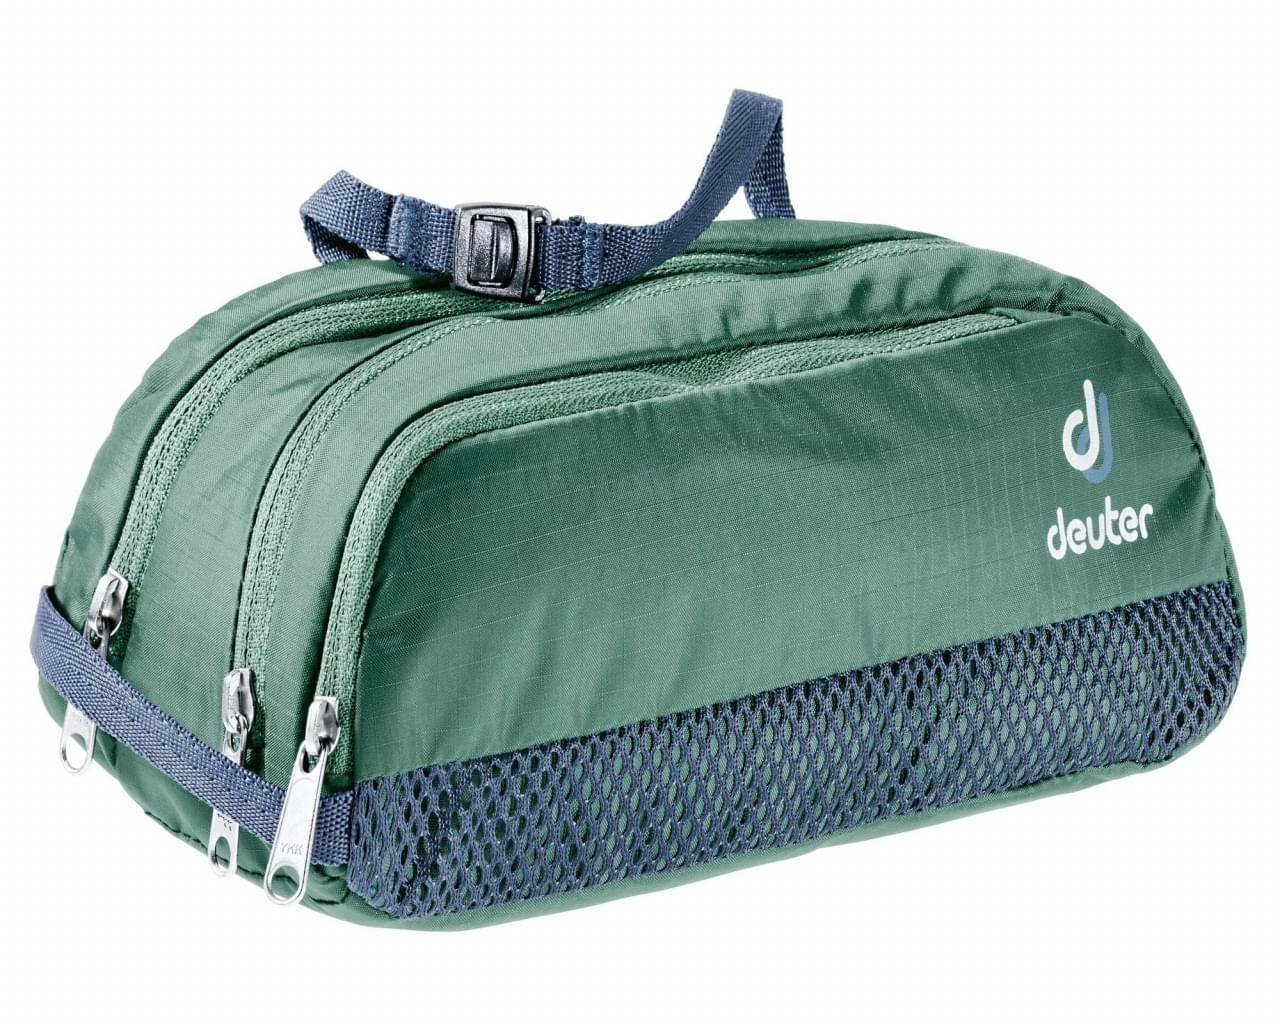 Deuter Wash Bag Tour II Toilettas Groen